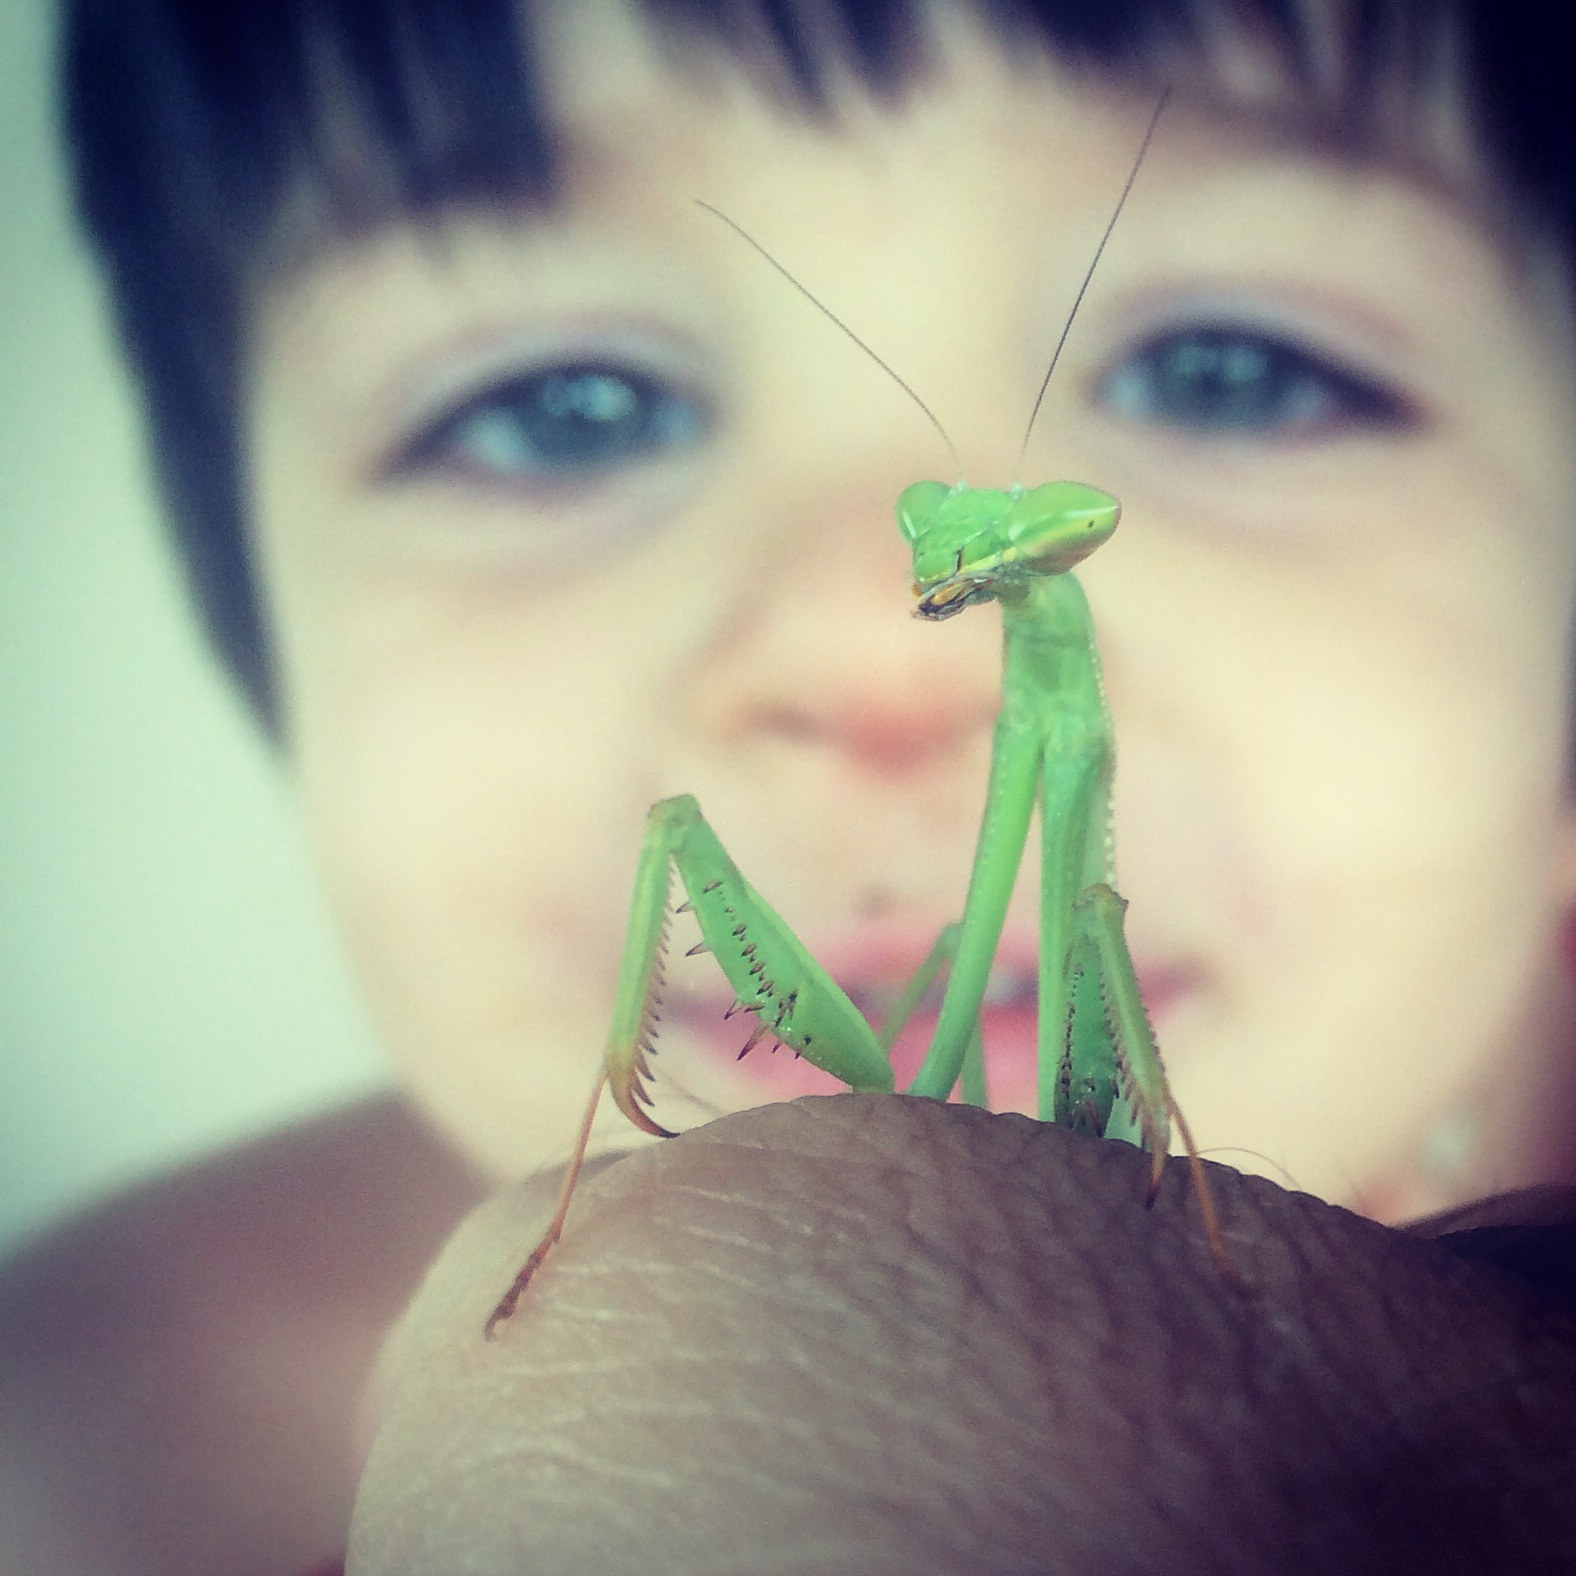 Noah Meets The Praying Mantis by micahgoulart